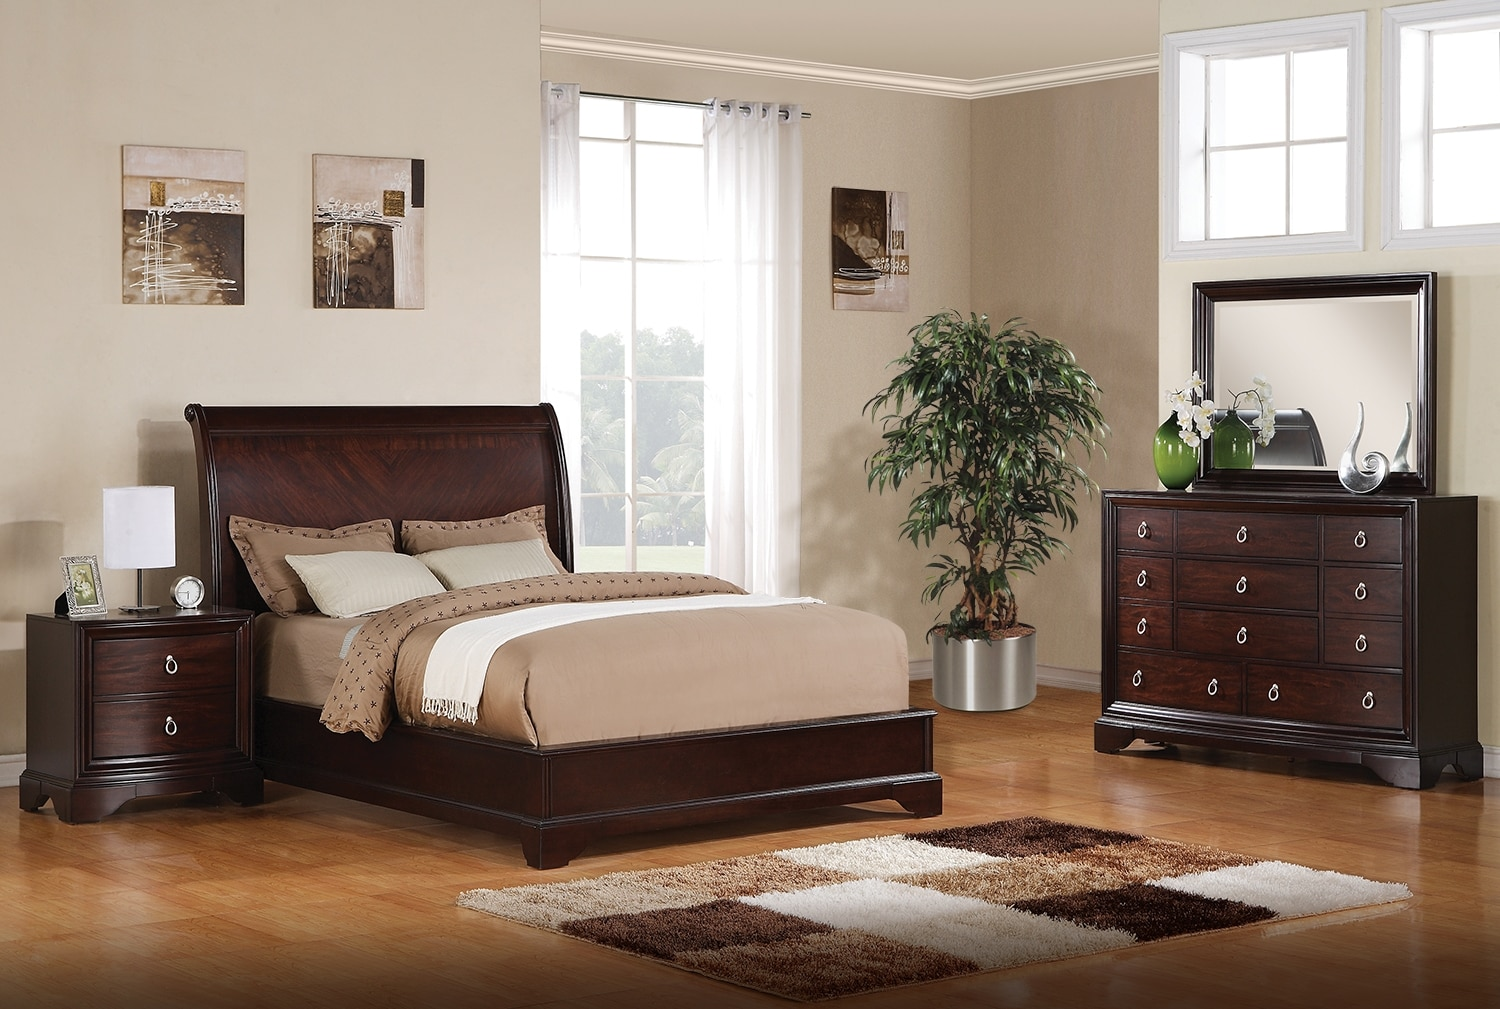 Noah 5-Piece King Bedroom Set - Dark Cherry